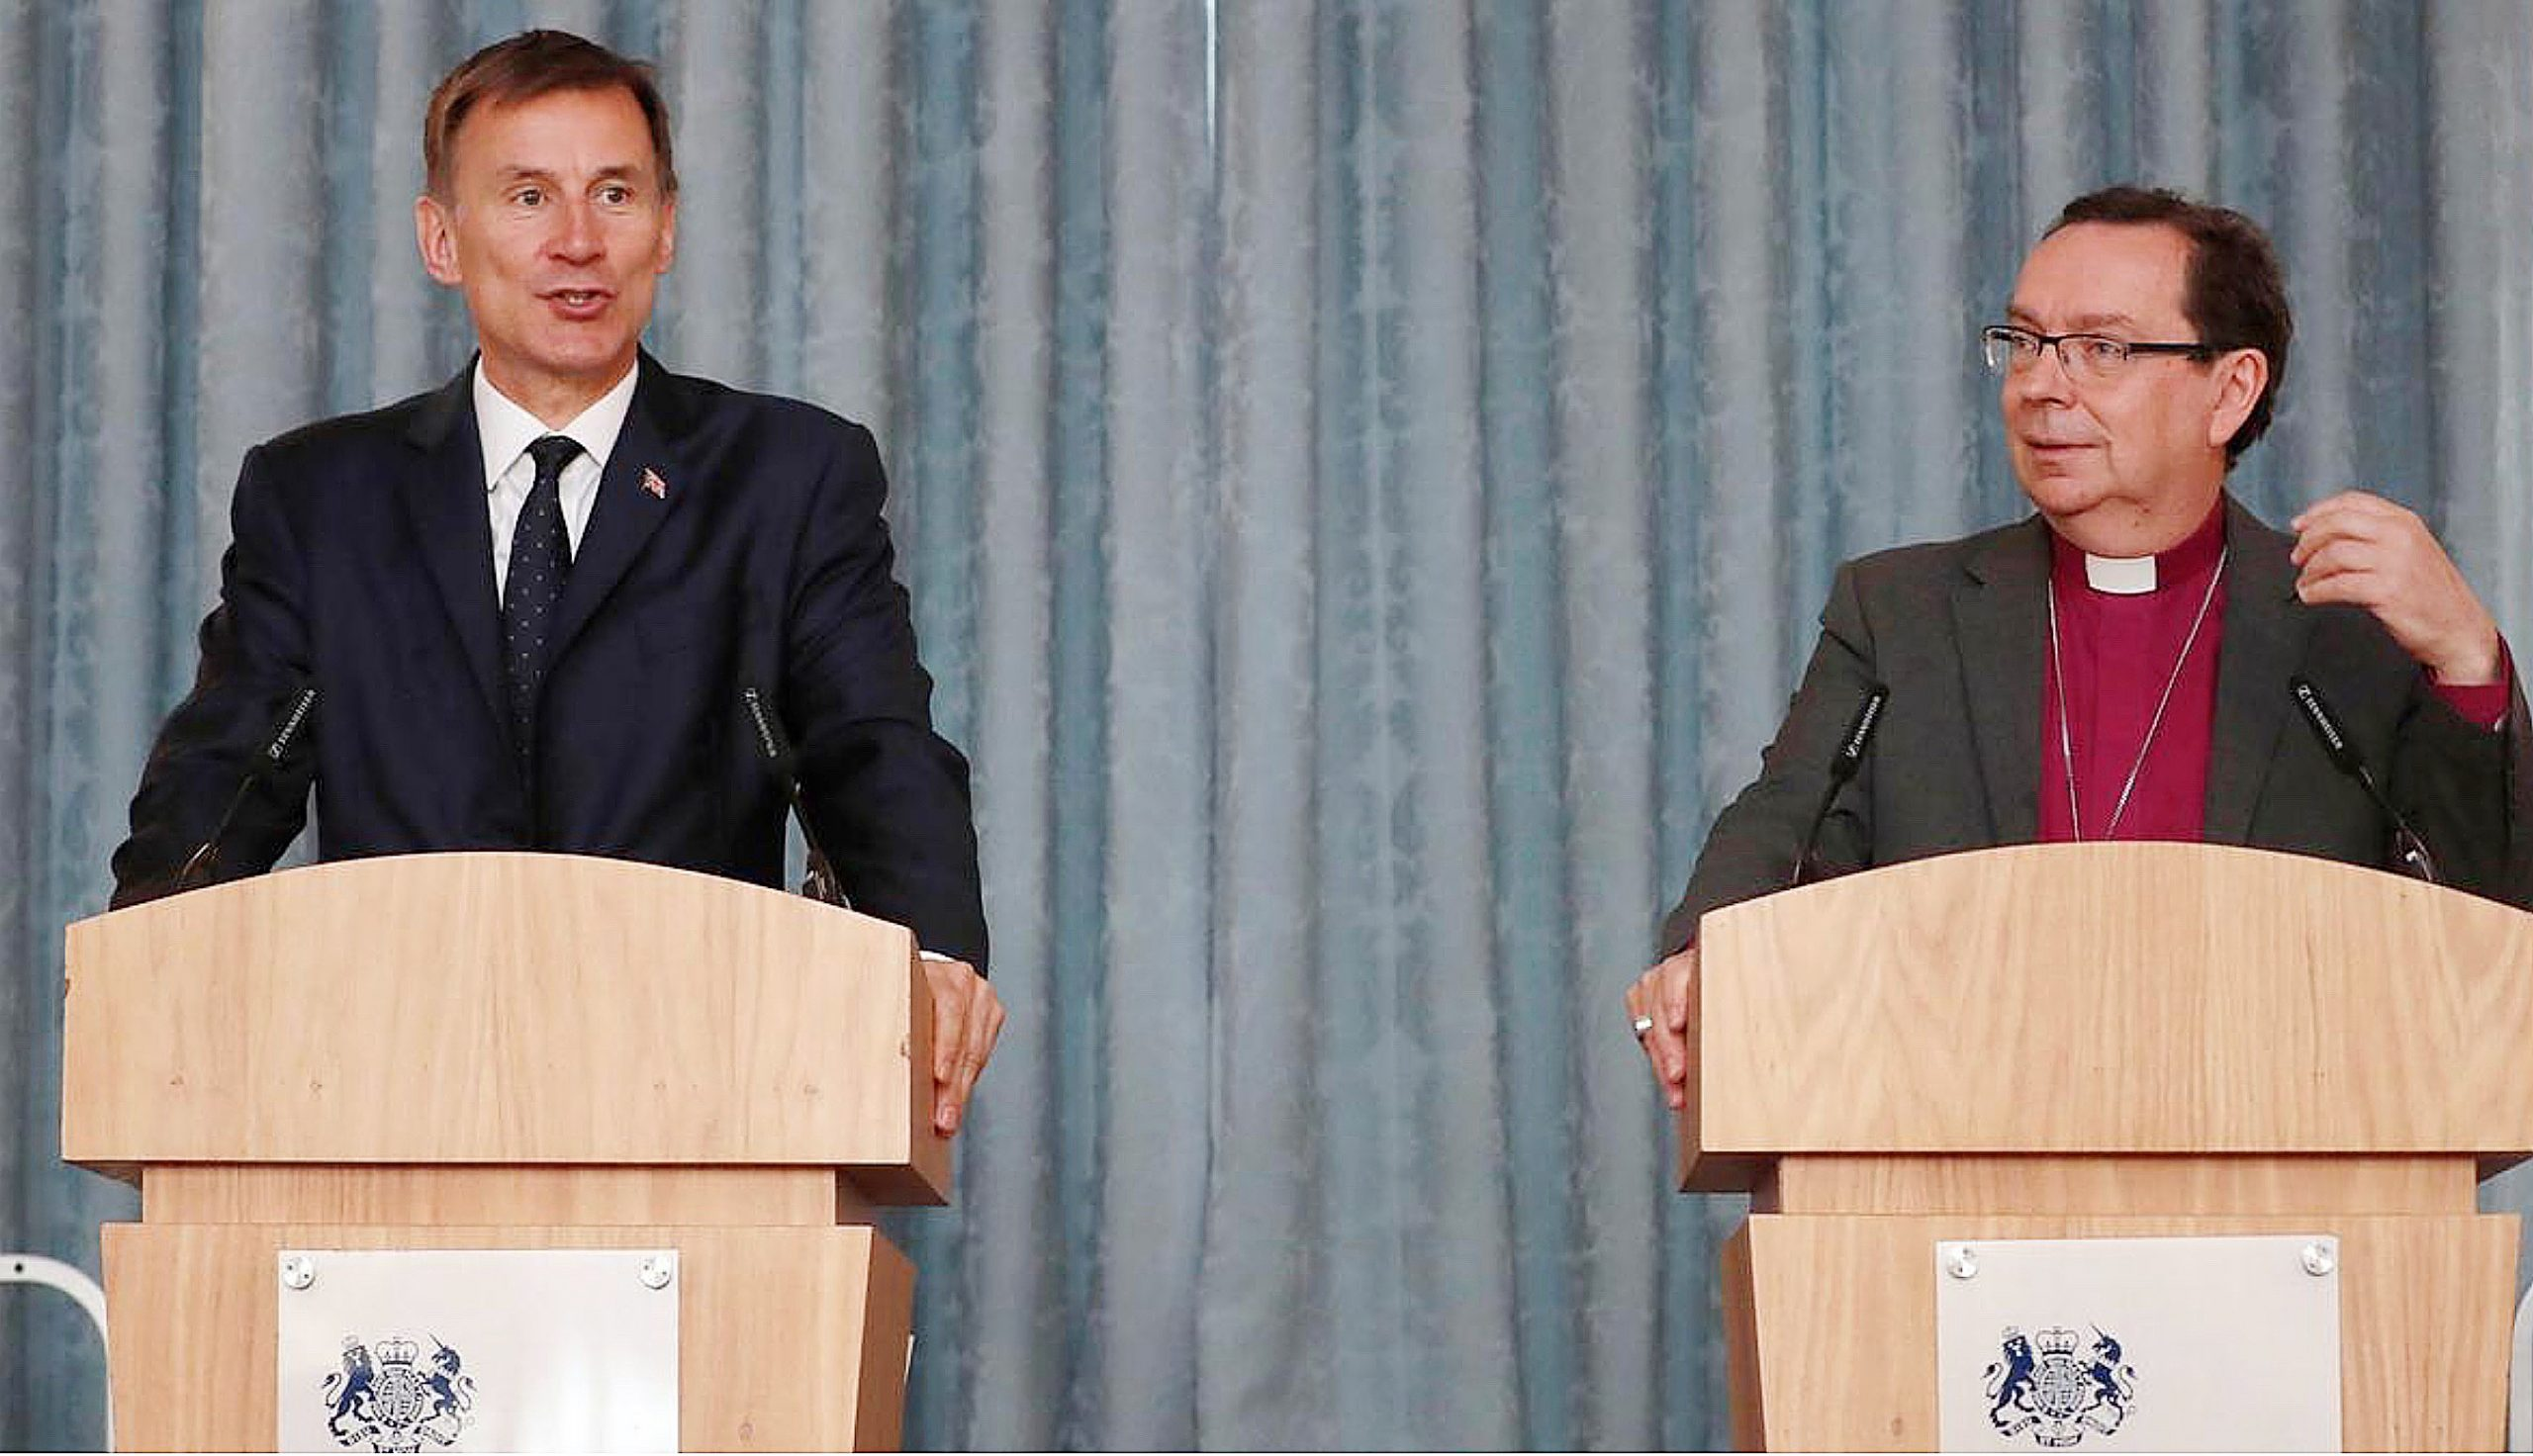 Jeremy Hunt shares a podium with the bishop